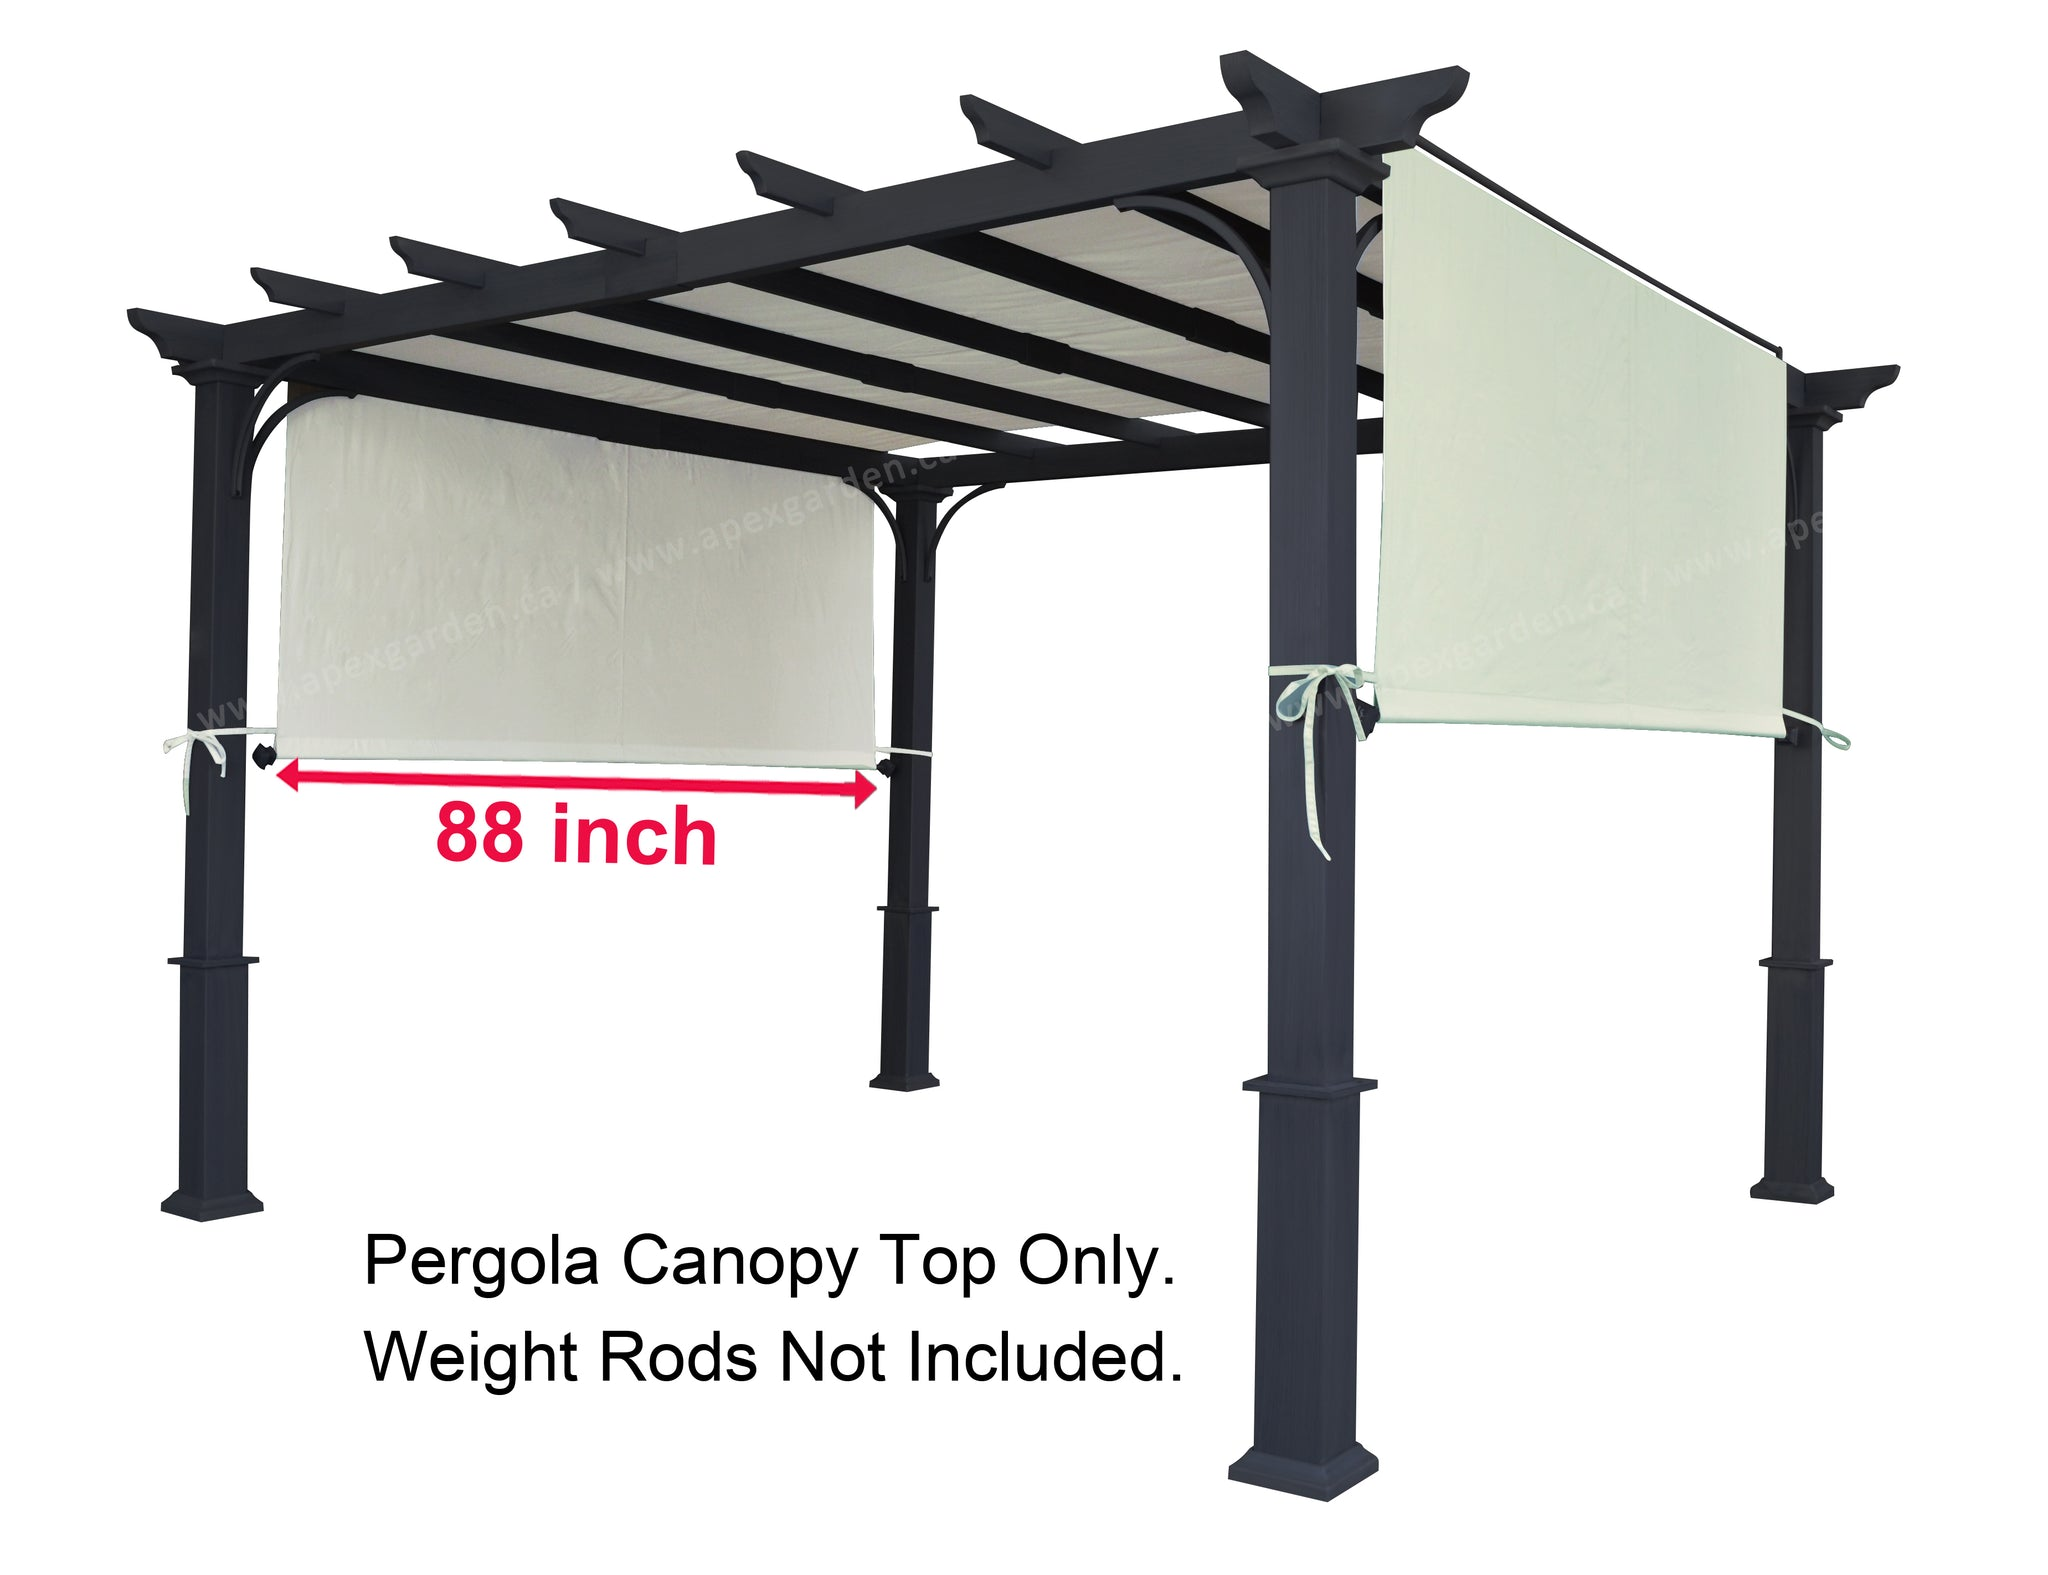 "APEX GARDEN Replacement Canopy Top for  YH-1515S Pergola Sunshade 88""X194"" - APEX GARDEN"